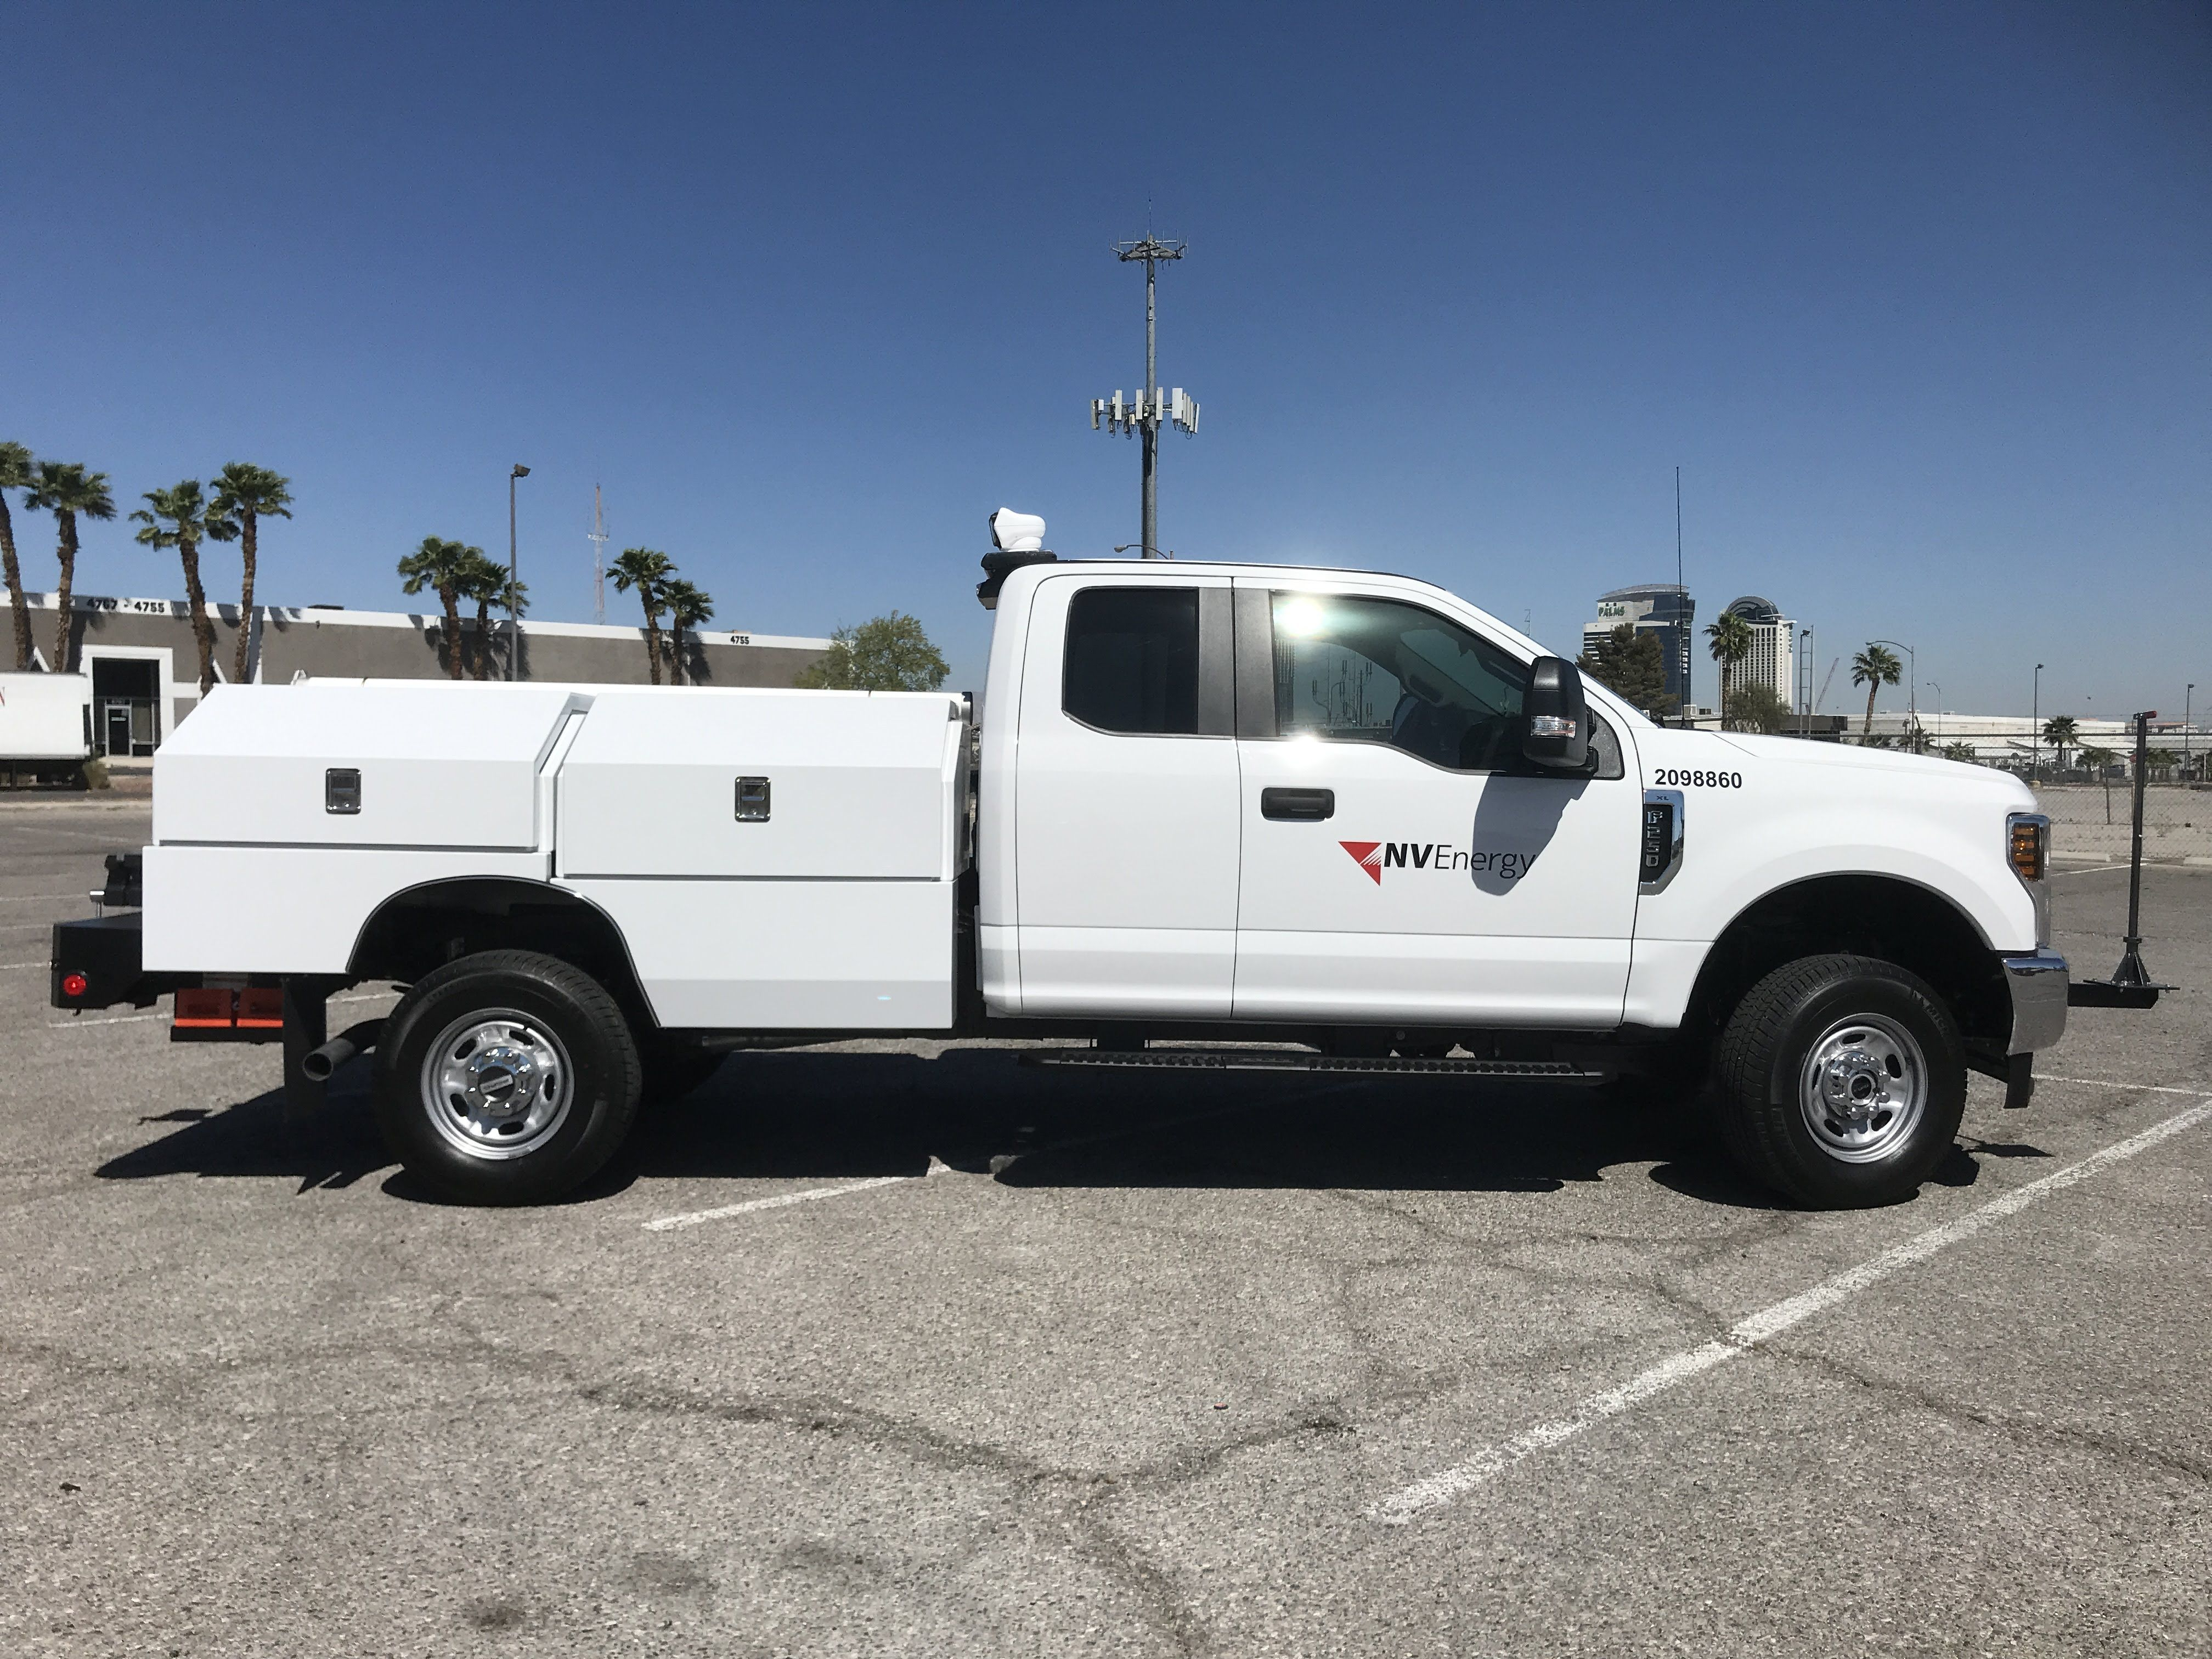 This Service Body Is The Perfect Small Package To Fit On The F250